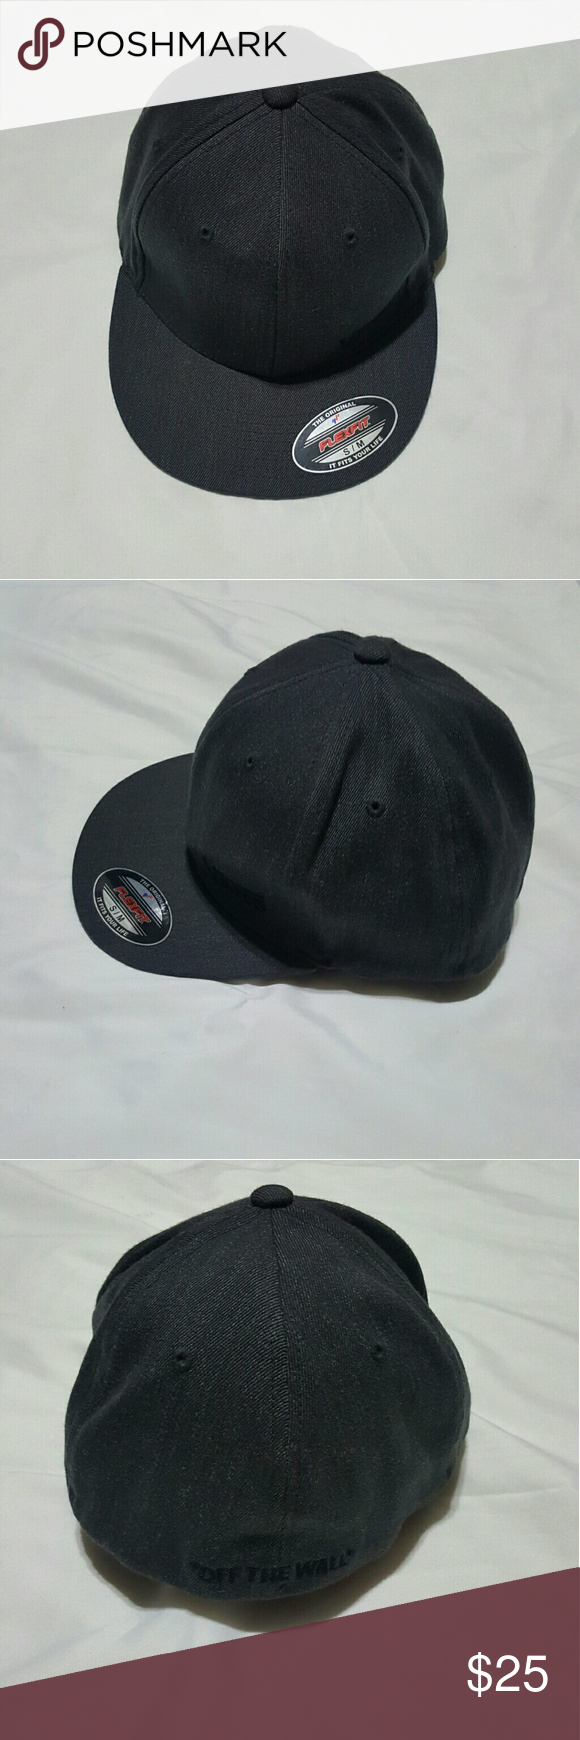 10daad43 Vans Splitz Flex Fit Hat (Charcoal Heather) Vans Splitz Cap - Sometimes,  simple